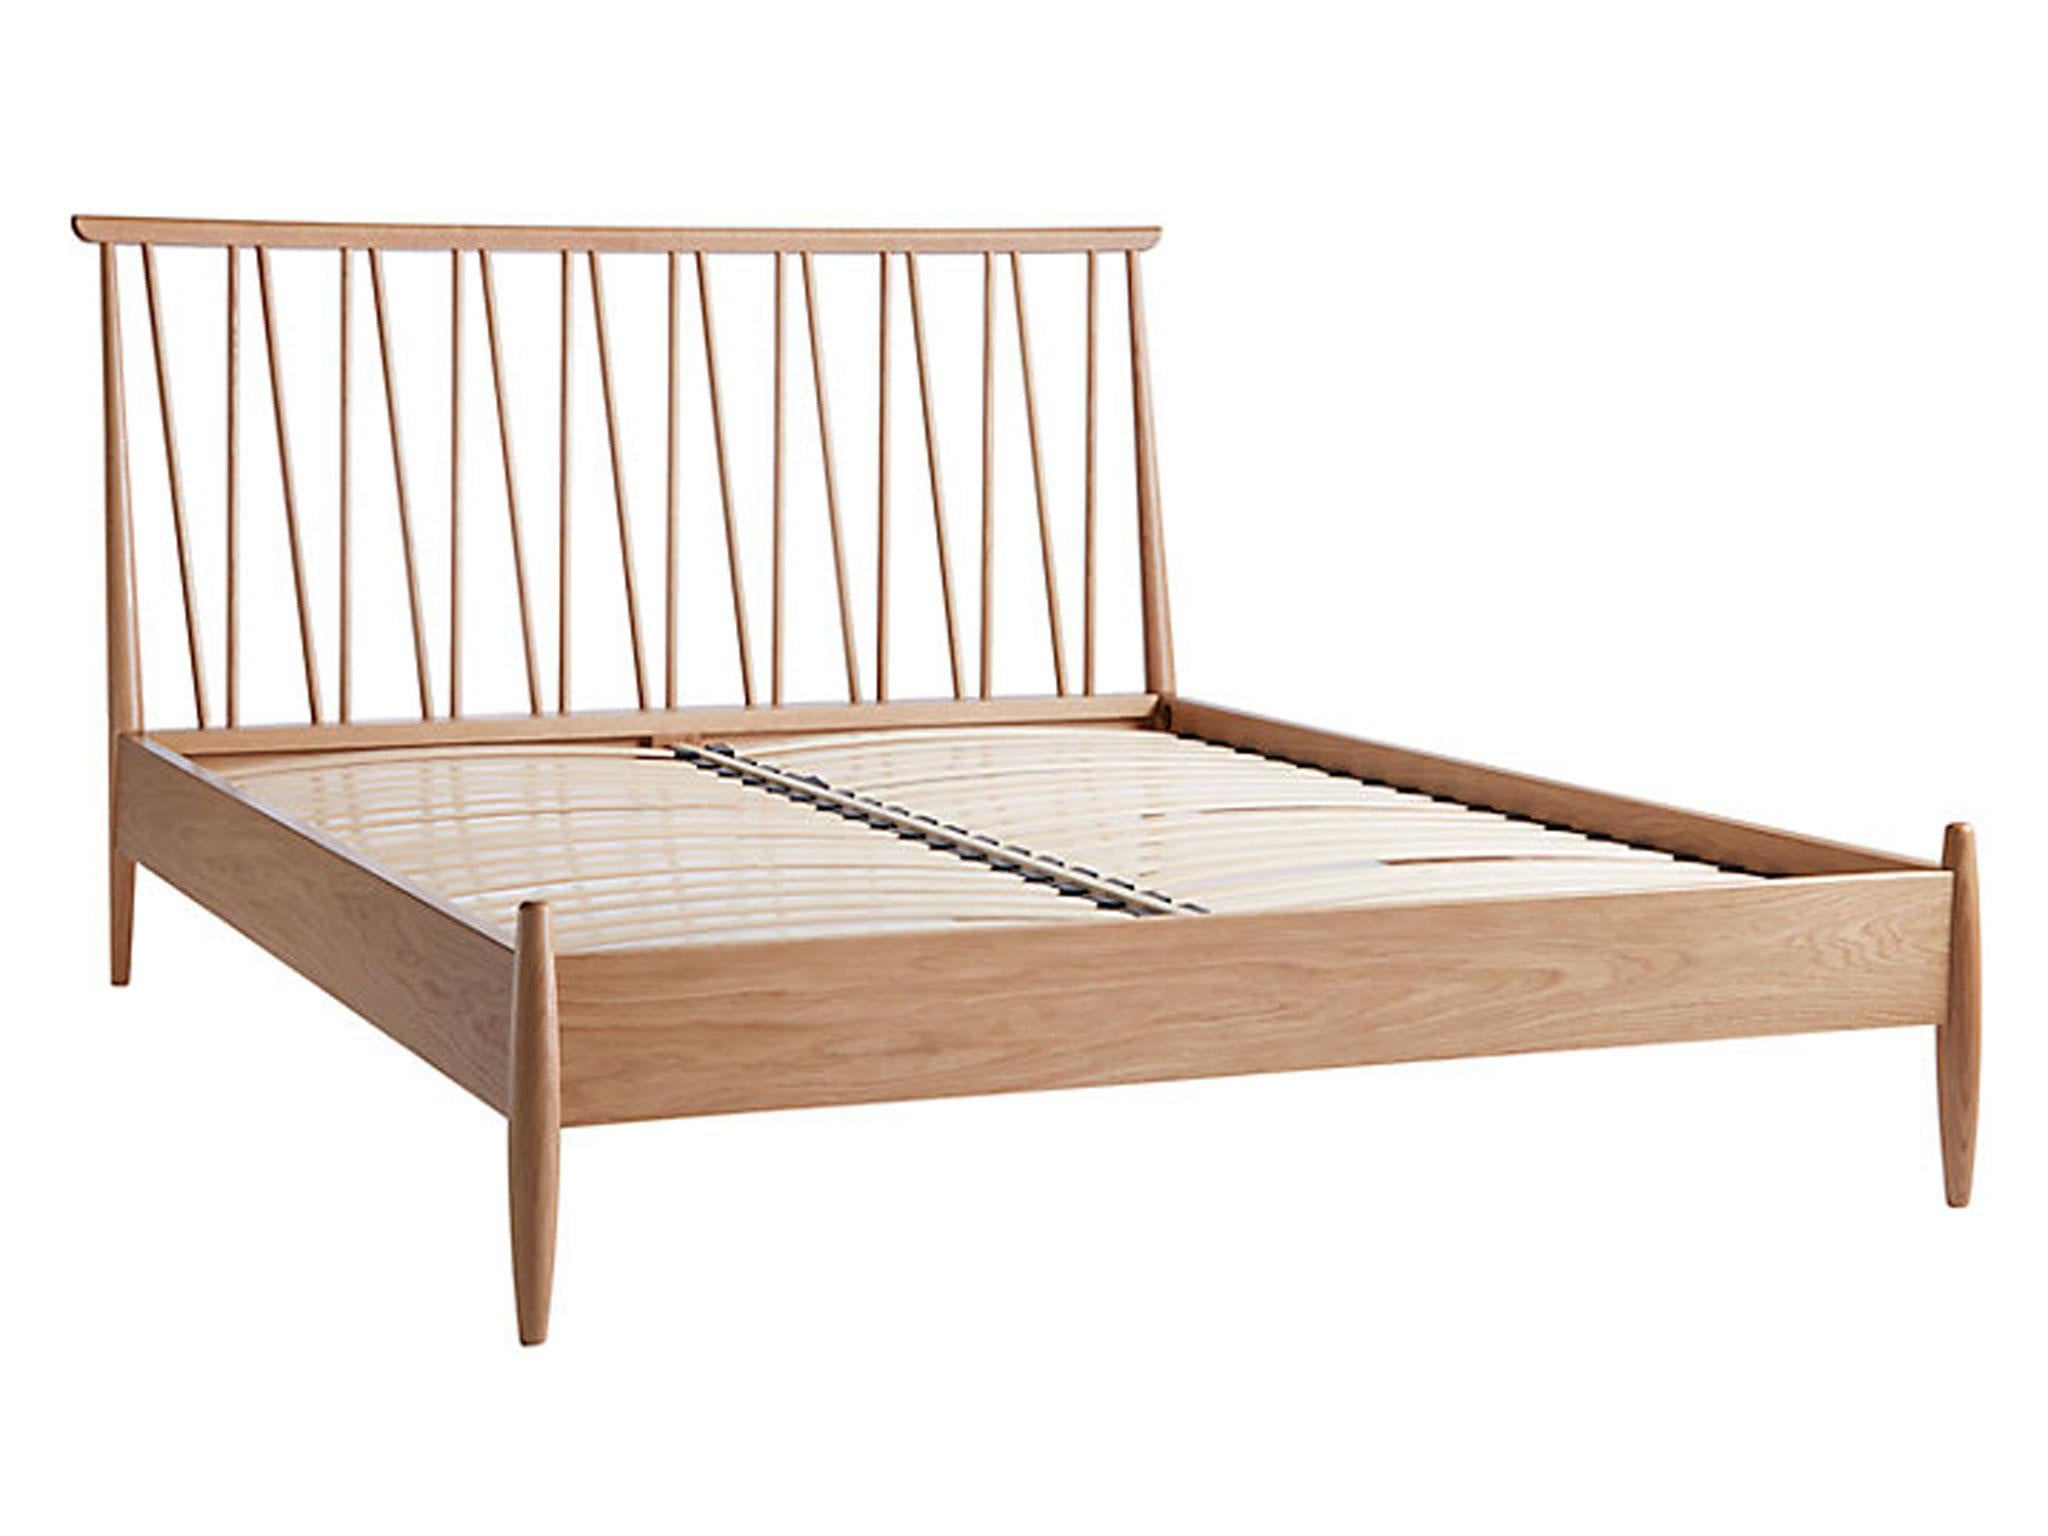 11 Best Beds The Independent Lady Rose Sprey 180 X 200 Cm Borneo Dimensions 106cm 151cm 2135cm Double 107cm 166cm 2235cm King Self Assembly Required Yes Or Pay 29 For